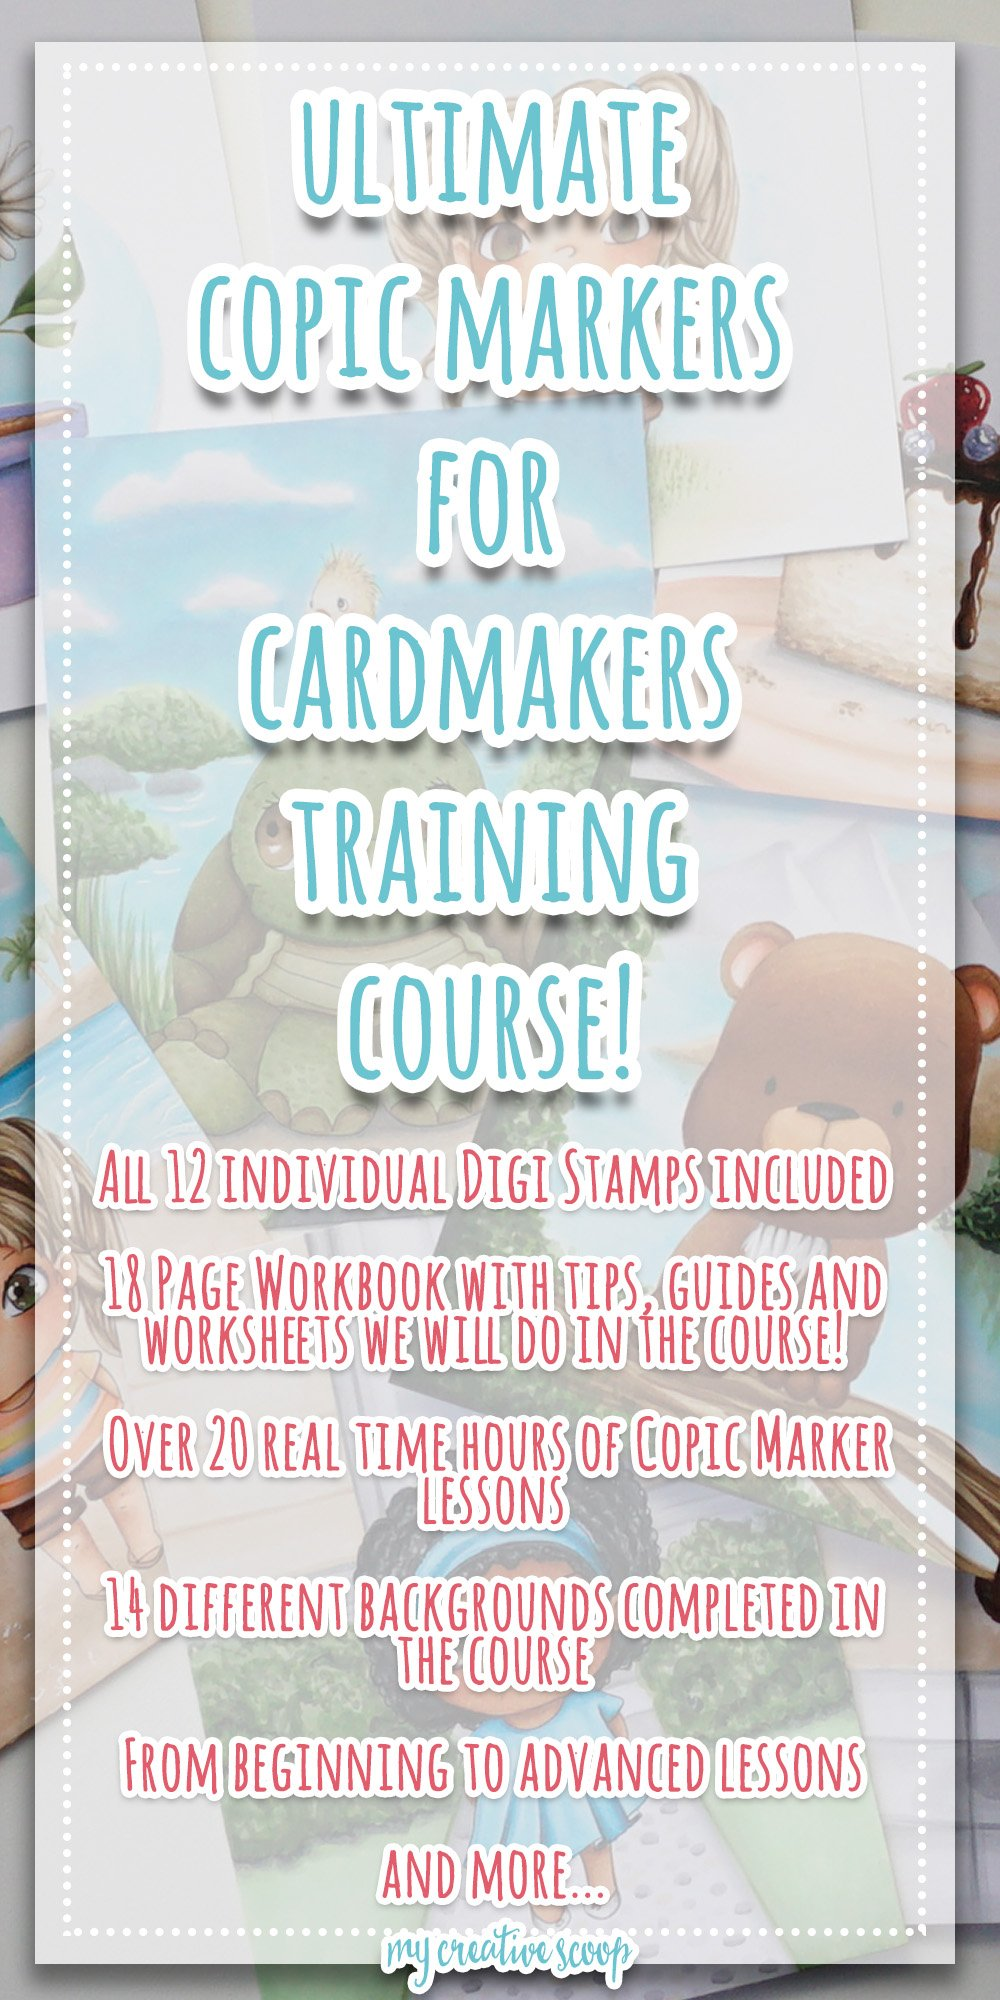 Online Copic Markers for Card-makers Training Course